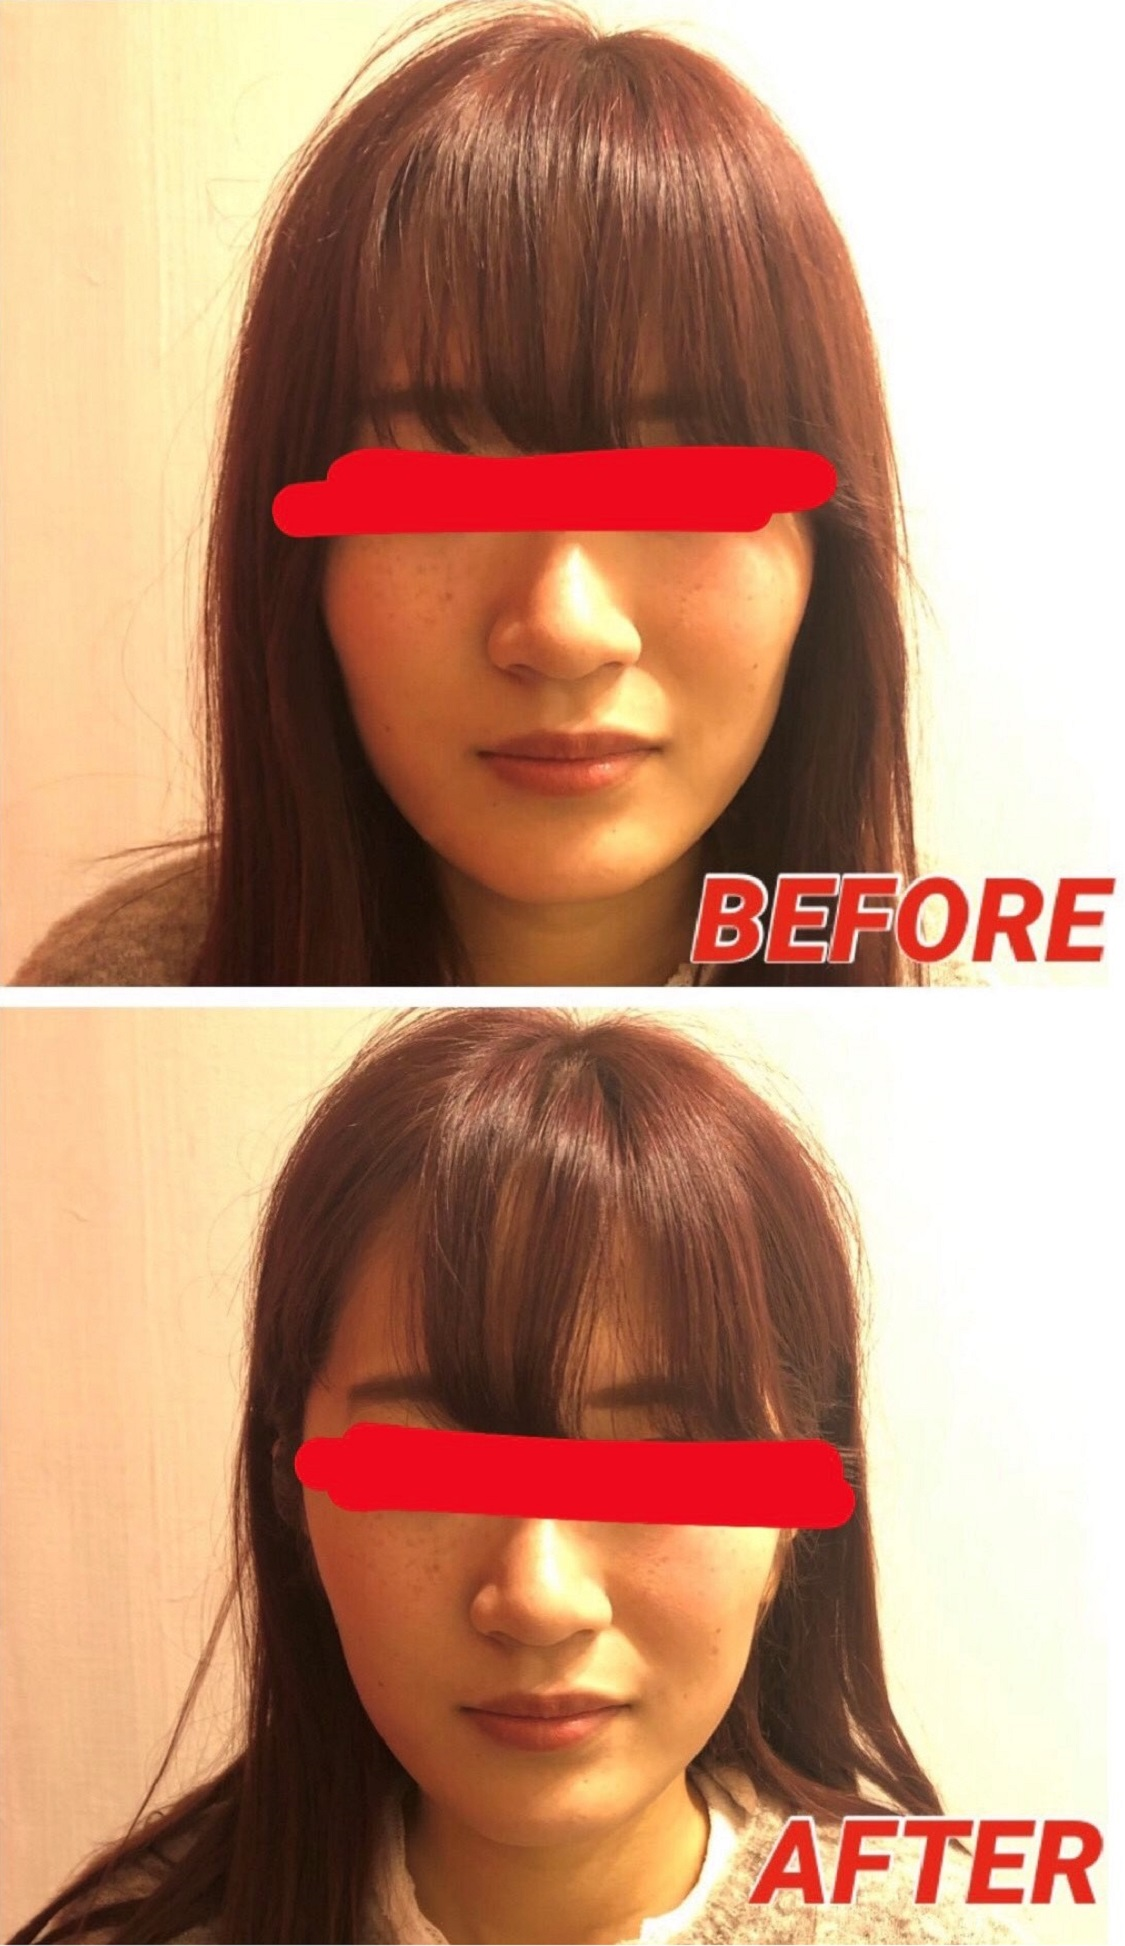 BeforeAfter-face